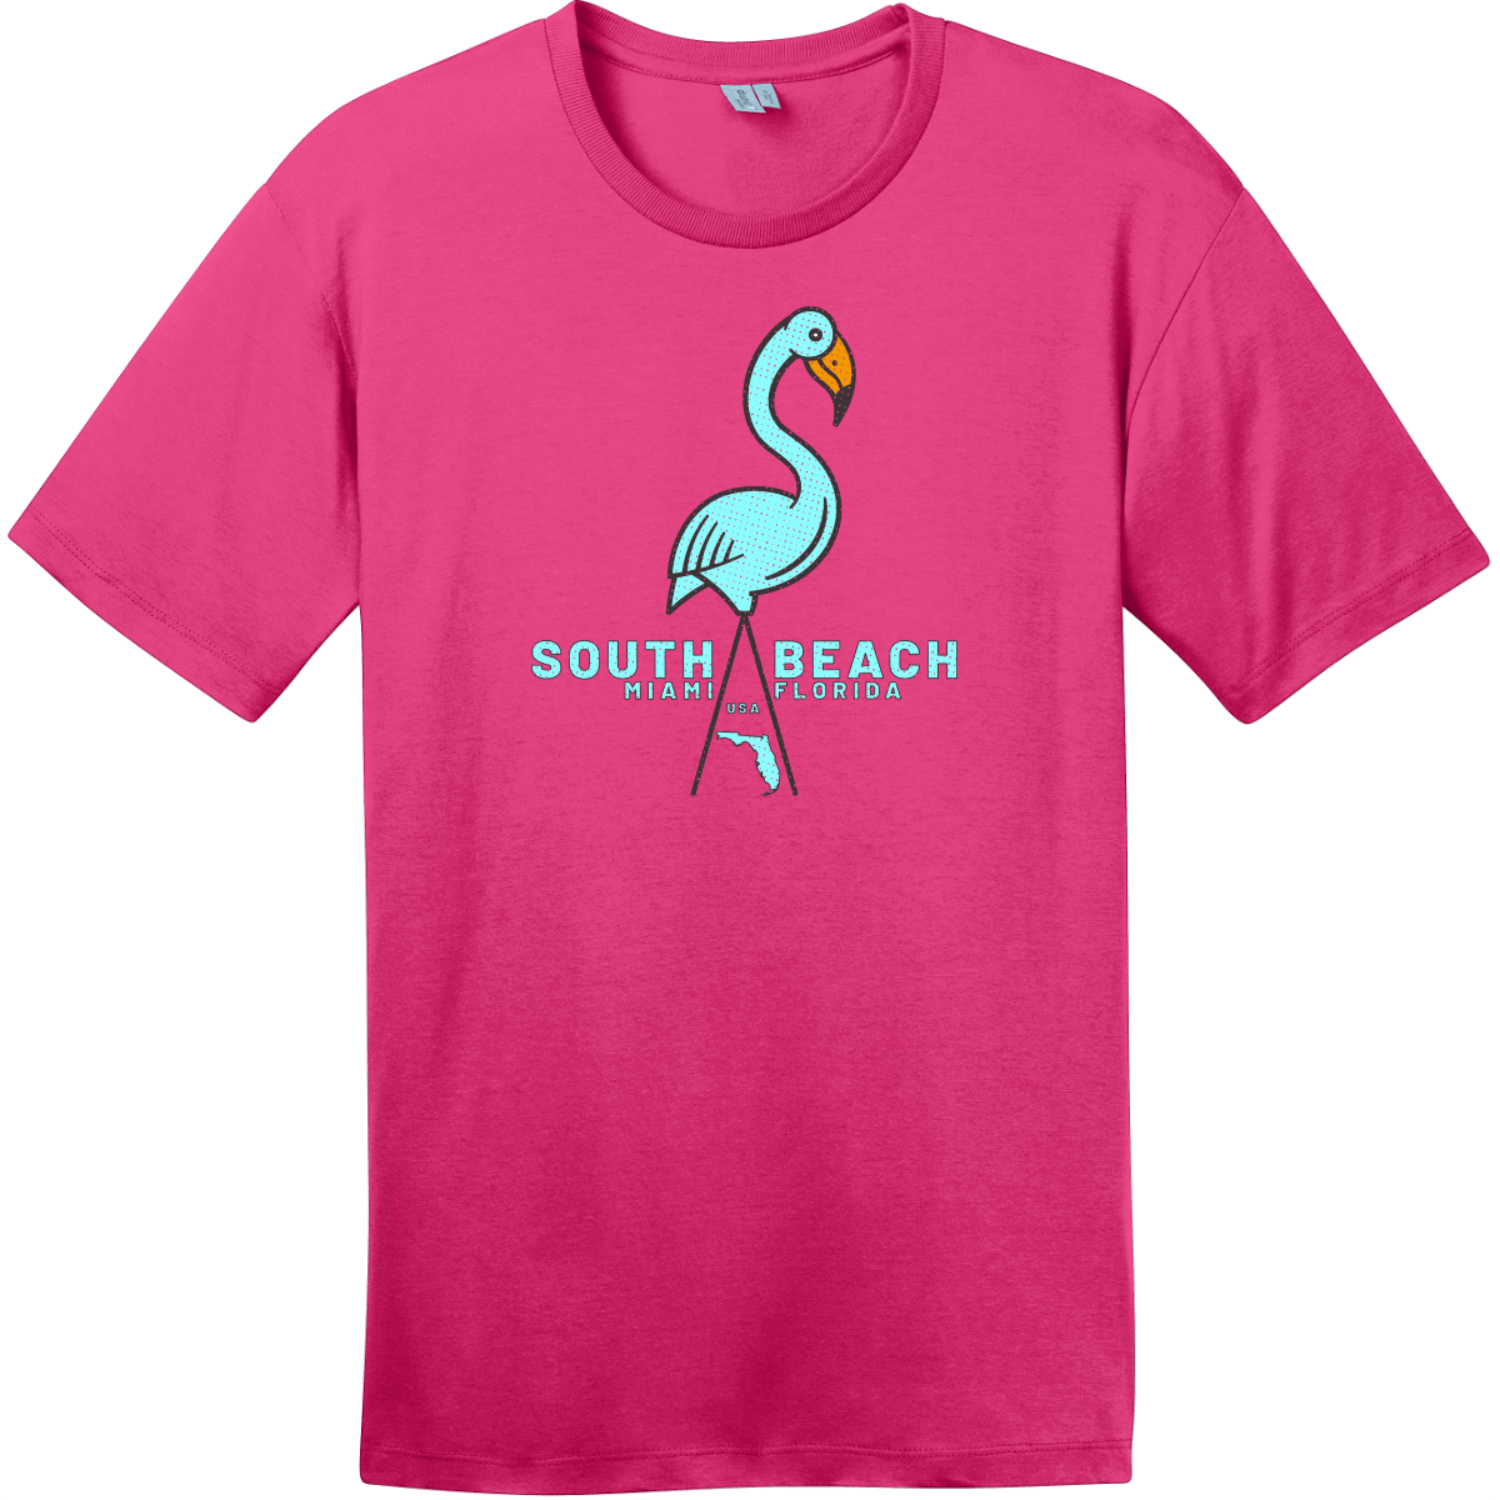 South Beach Miami Flamingo T Shirt Dark Fuchsia District Perfect Weight Tee DT104